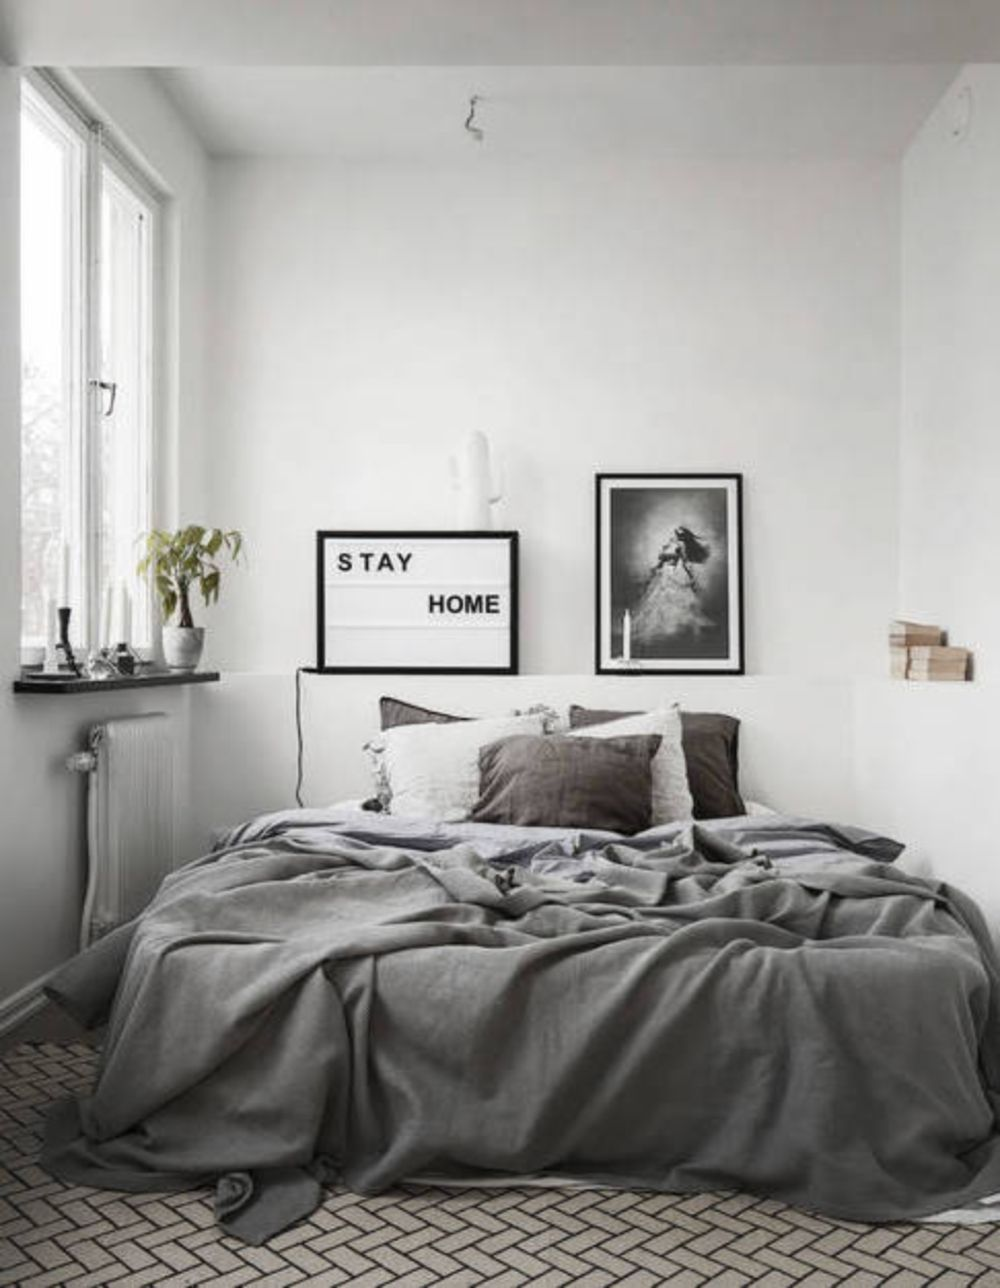 Charmant Cool 50 Mind Blowing Minimalist Bedroom Color Inspiration  Https://homedecort.com/2017/06/50 Mind Blowing Minimalist Bedroom  Color Inspiration/